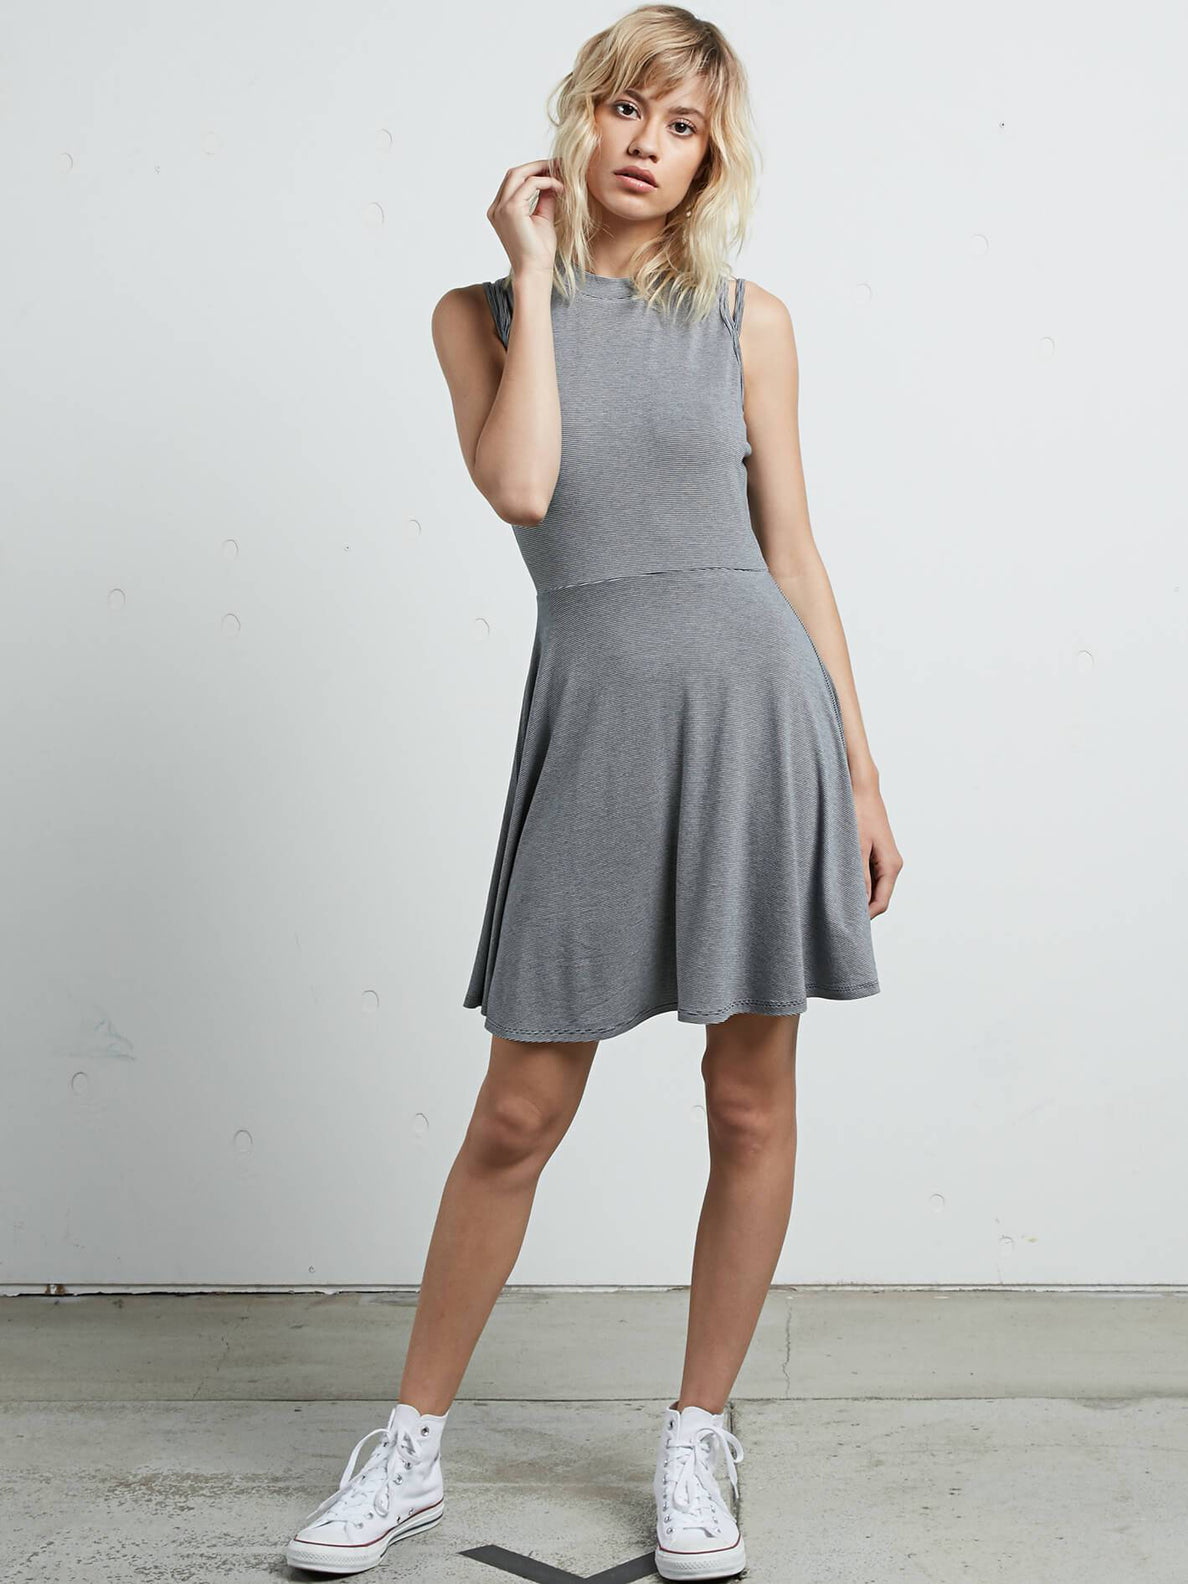 Open Arms Dress In Vintage Navy, Front View